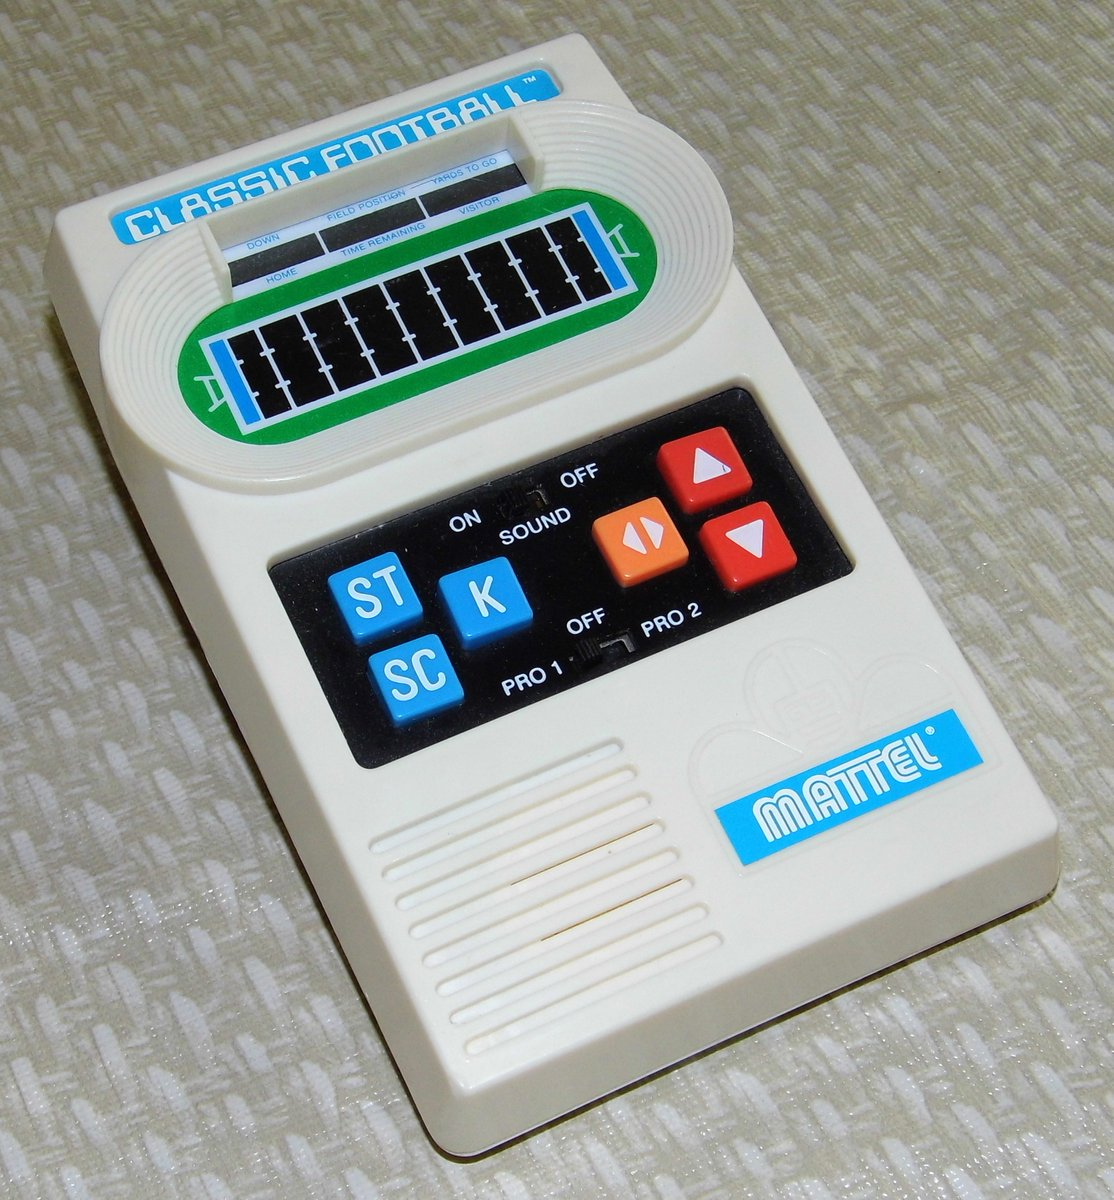 Who plays this kind of football? #RETROGAMING #Mattel #Football <br>http://pic.twitter.com/nkVyMs98PA